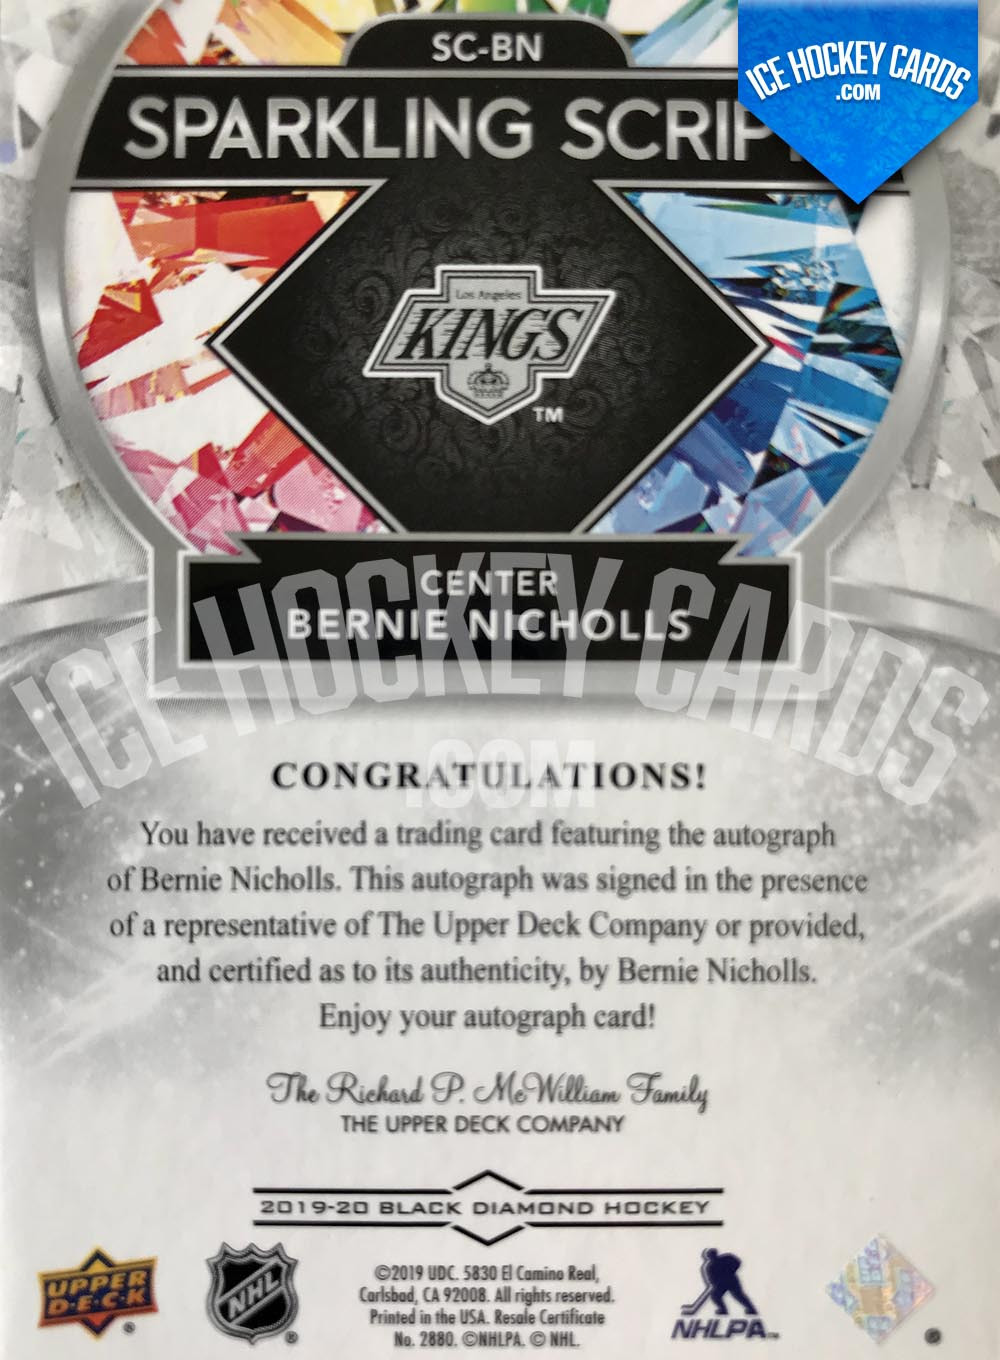 Upper Deck - Black Diamond 2019-20 - Bernie Nicholls Sparkling Scripts Autograph back